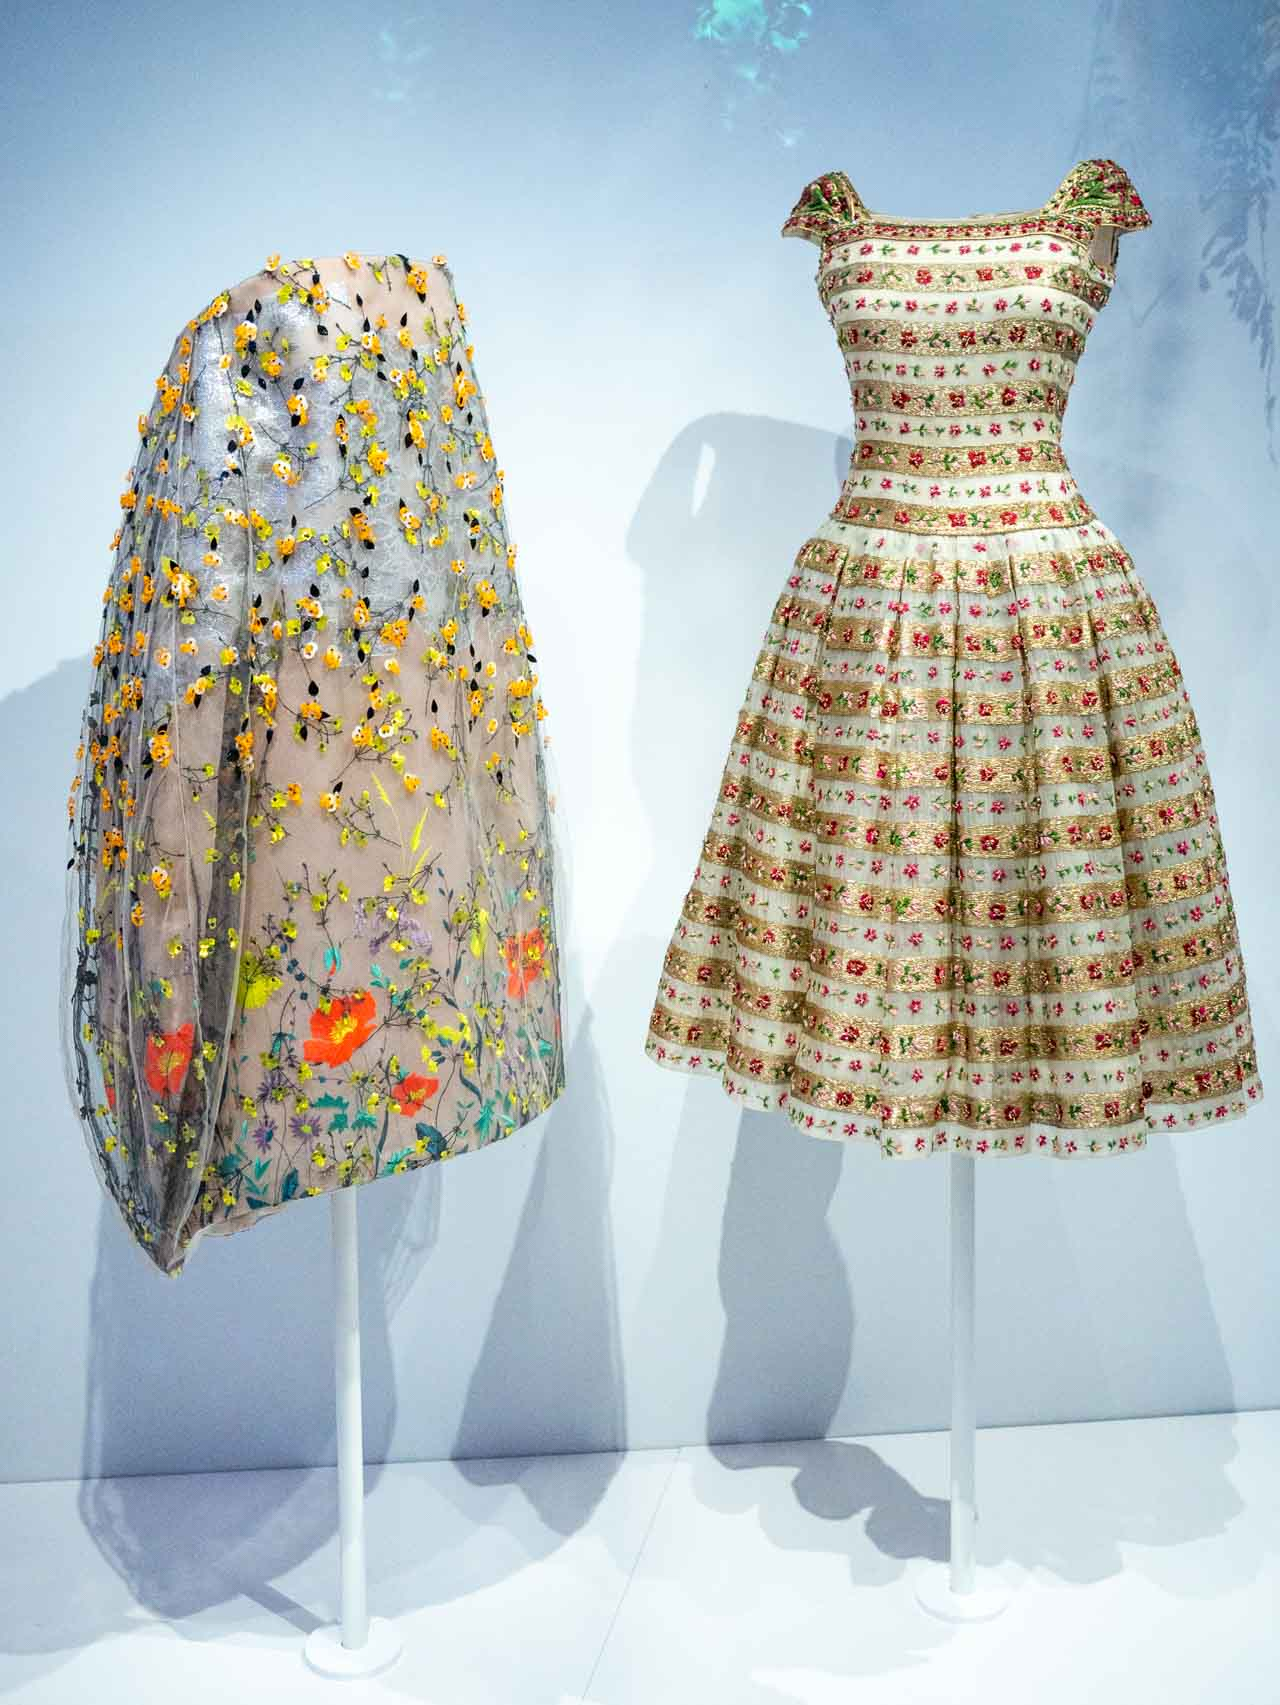 Dresses by Christian Dior and Raf Simons for Christian Dior inspired by the garden. Taken at the V&A exhibition © The Cutting Class, 2019.